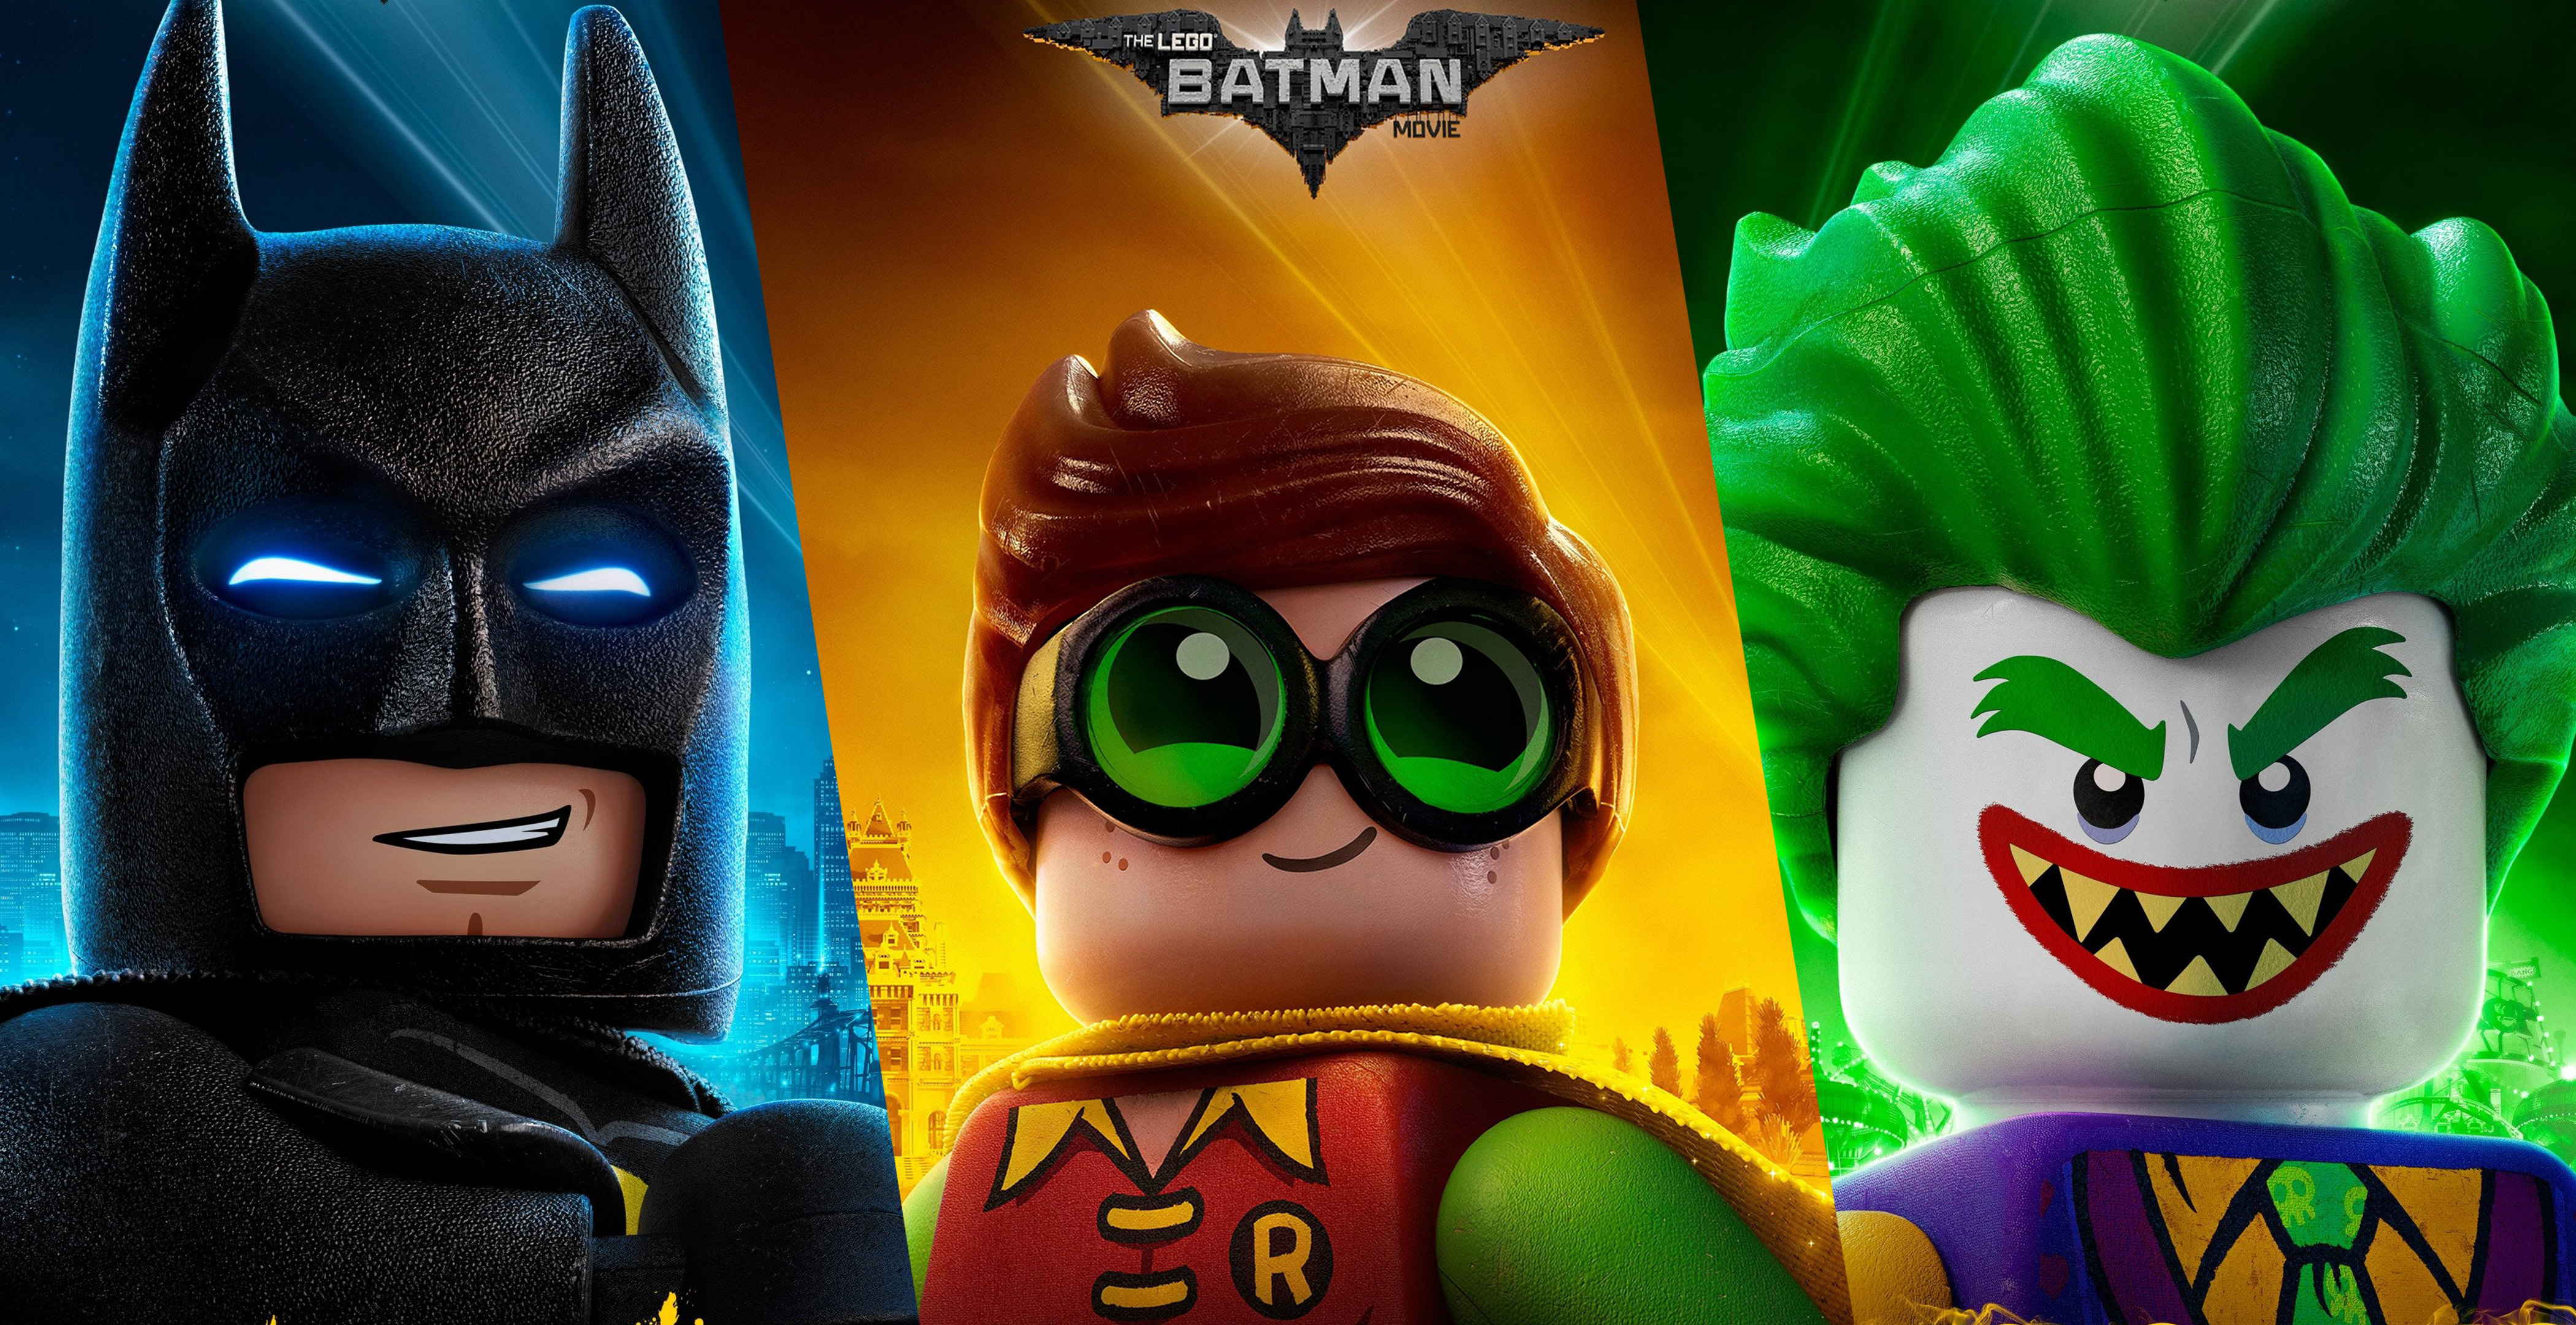 16 the lego batman movie hd wallpapers | background images